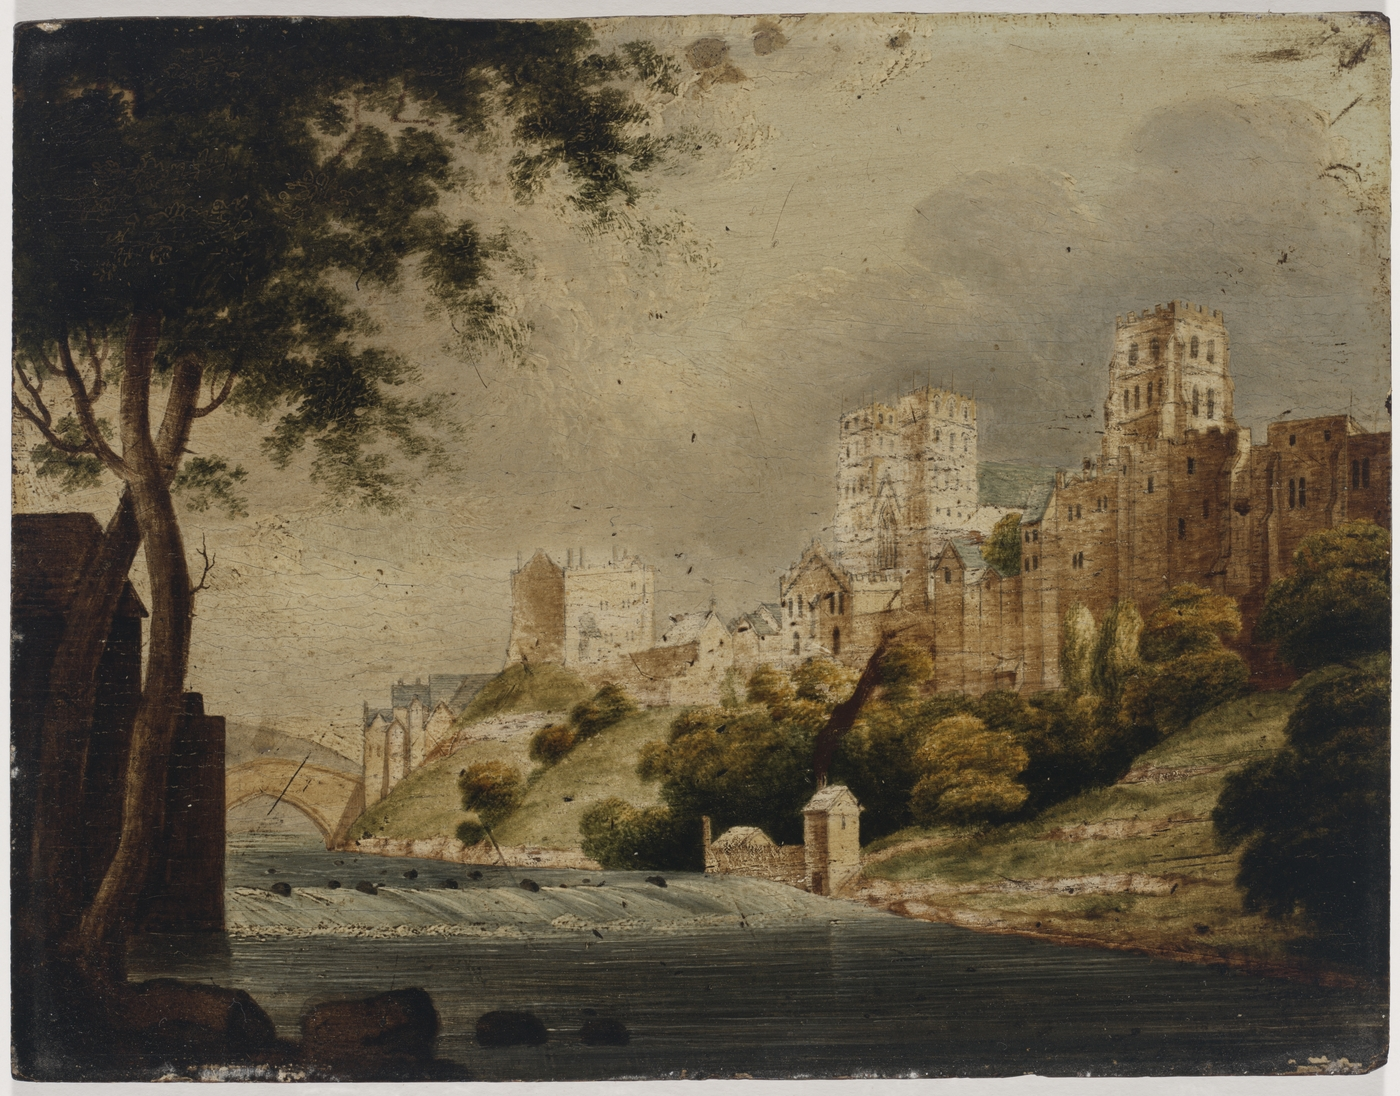 Was one of Ballarat's most famed artists actually a convict?